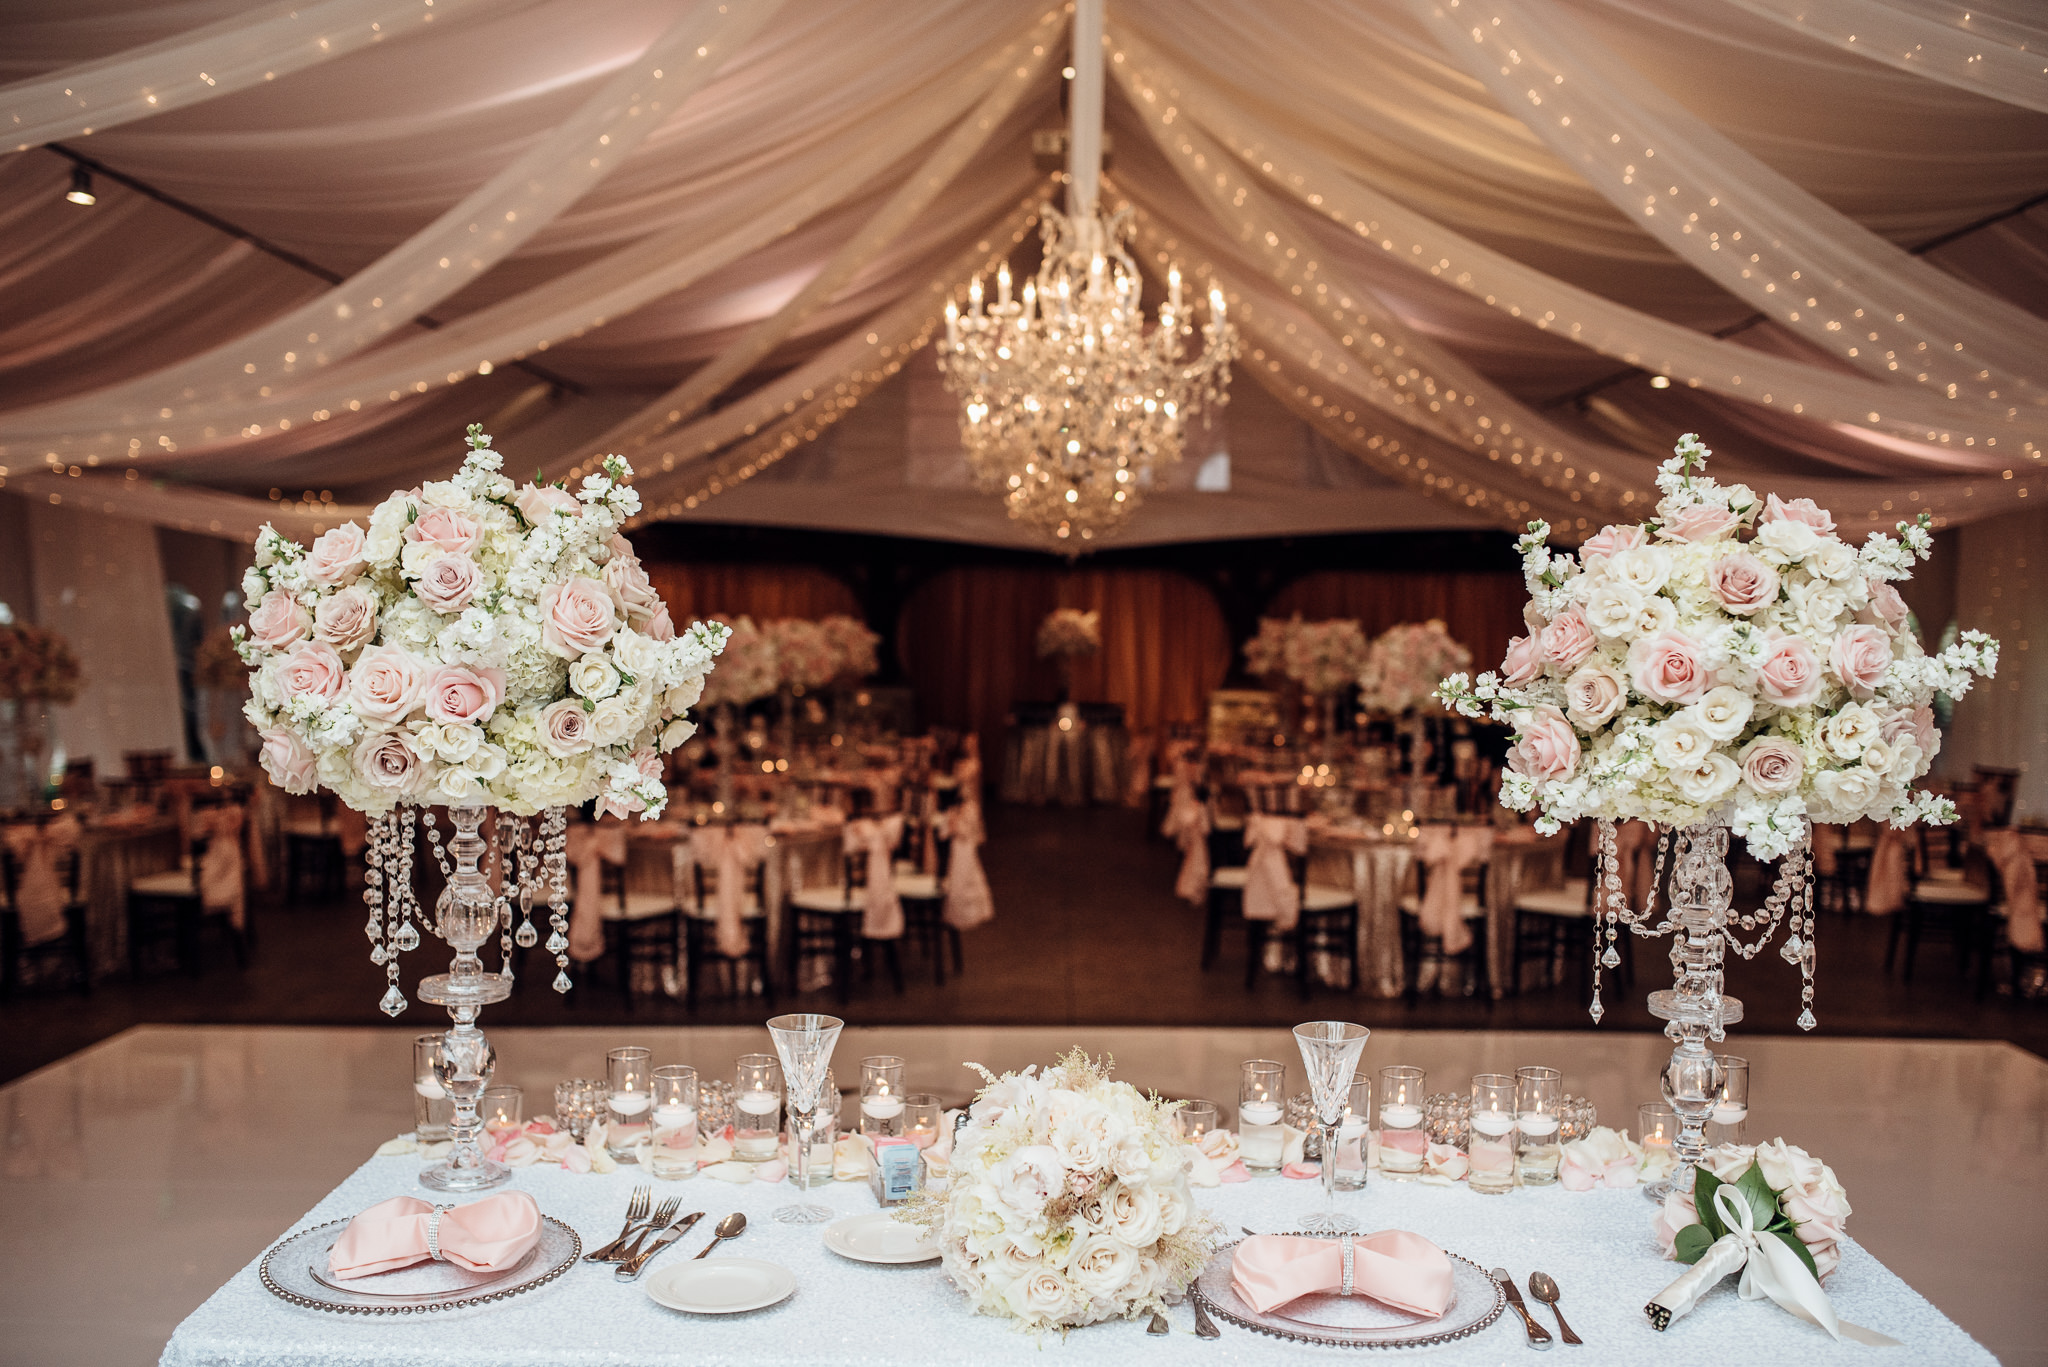 The Finishing Touch Wedding Design - The Finishing Touch Wedding Design